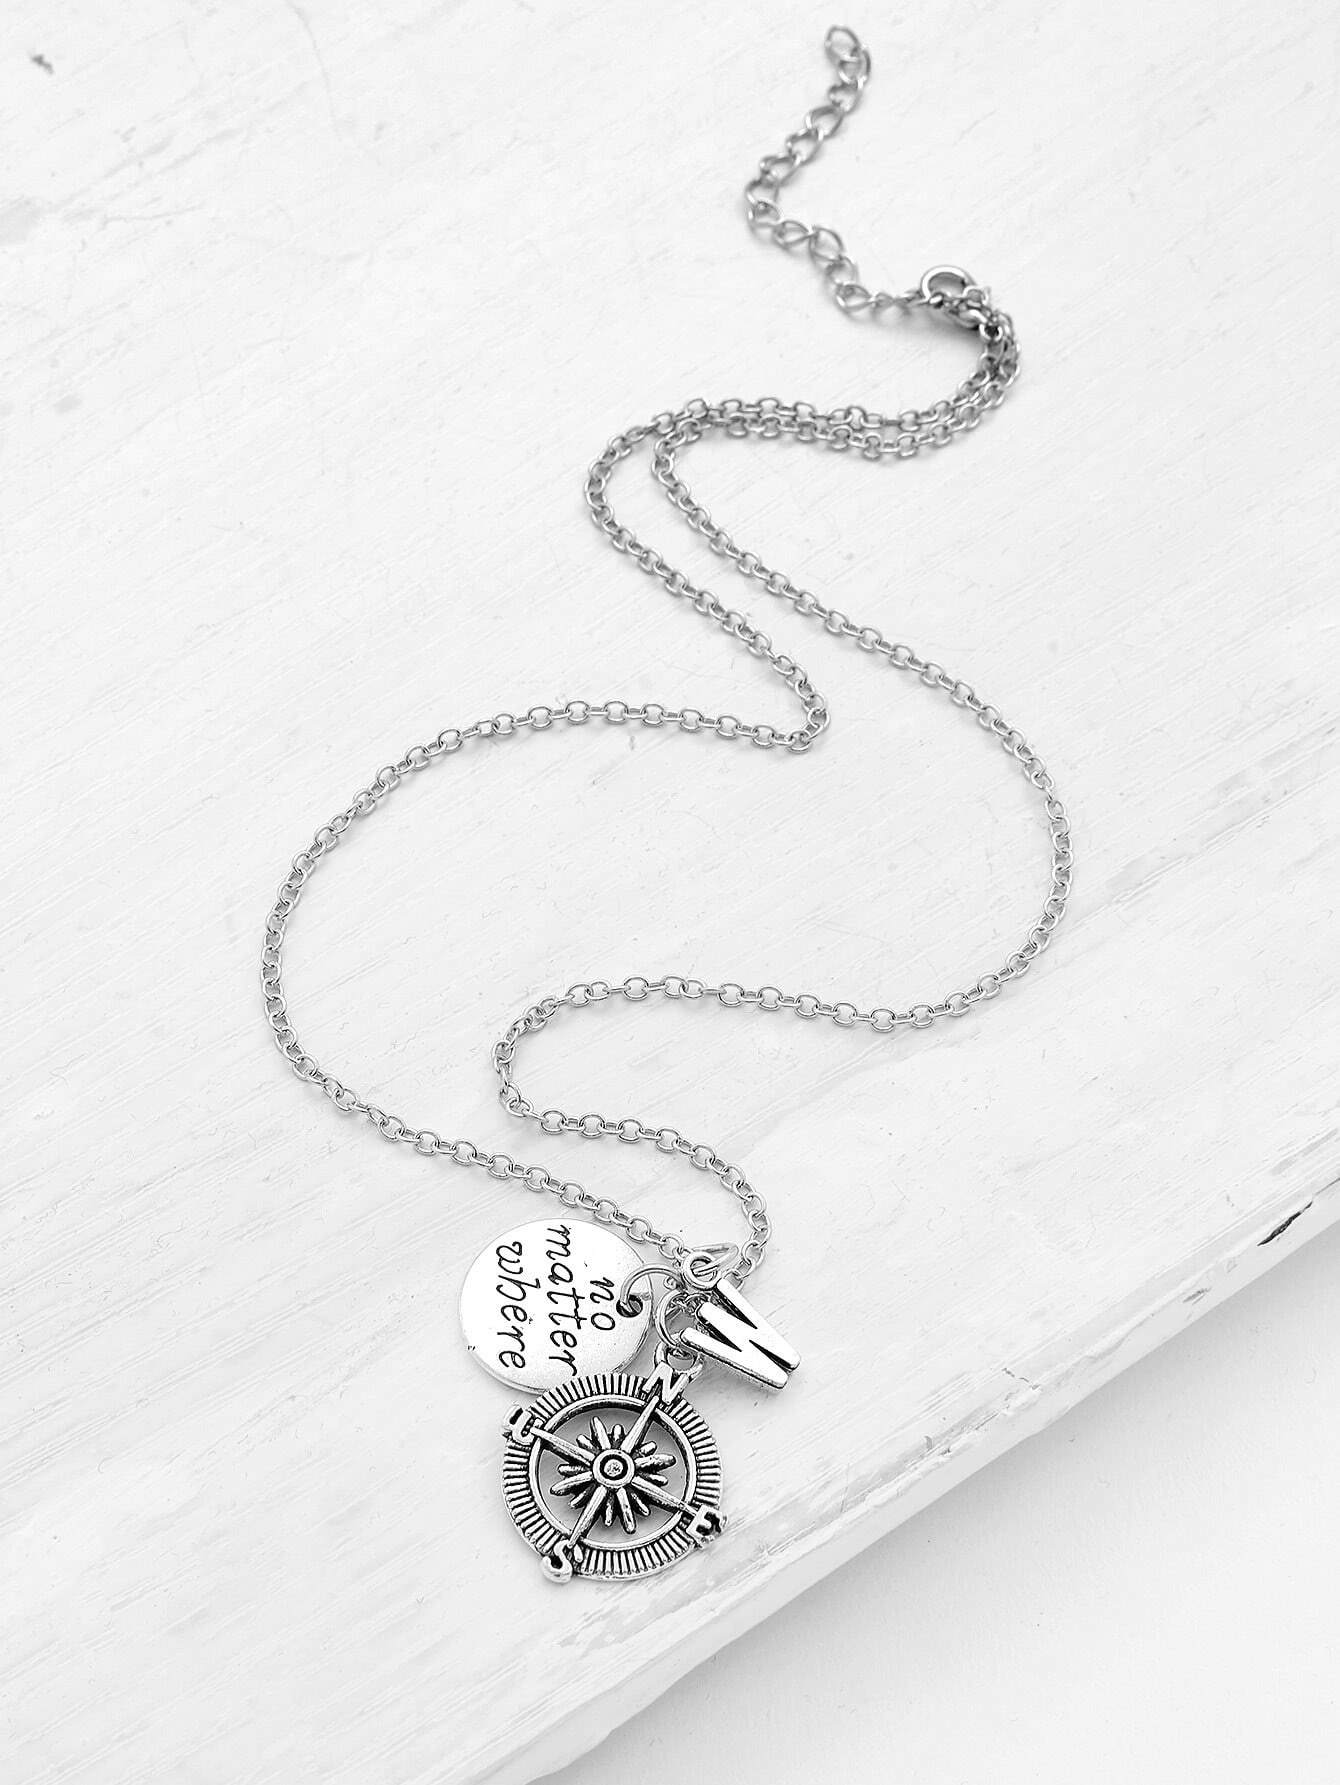 Compass & Letter Pendant Chain Necklace double ring letter link chain pendant necklace